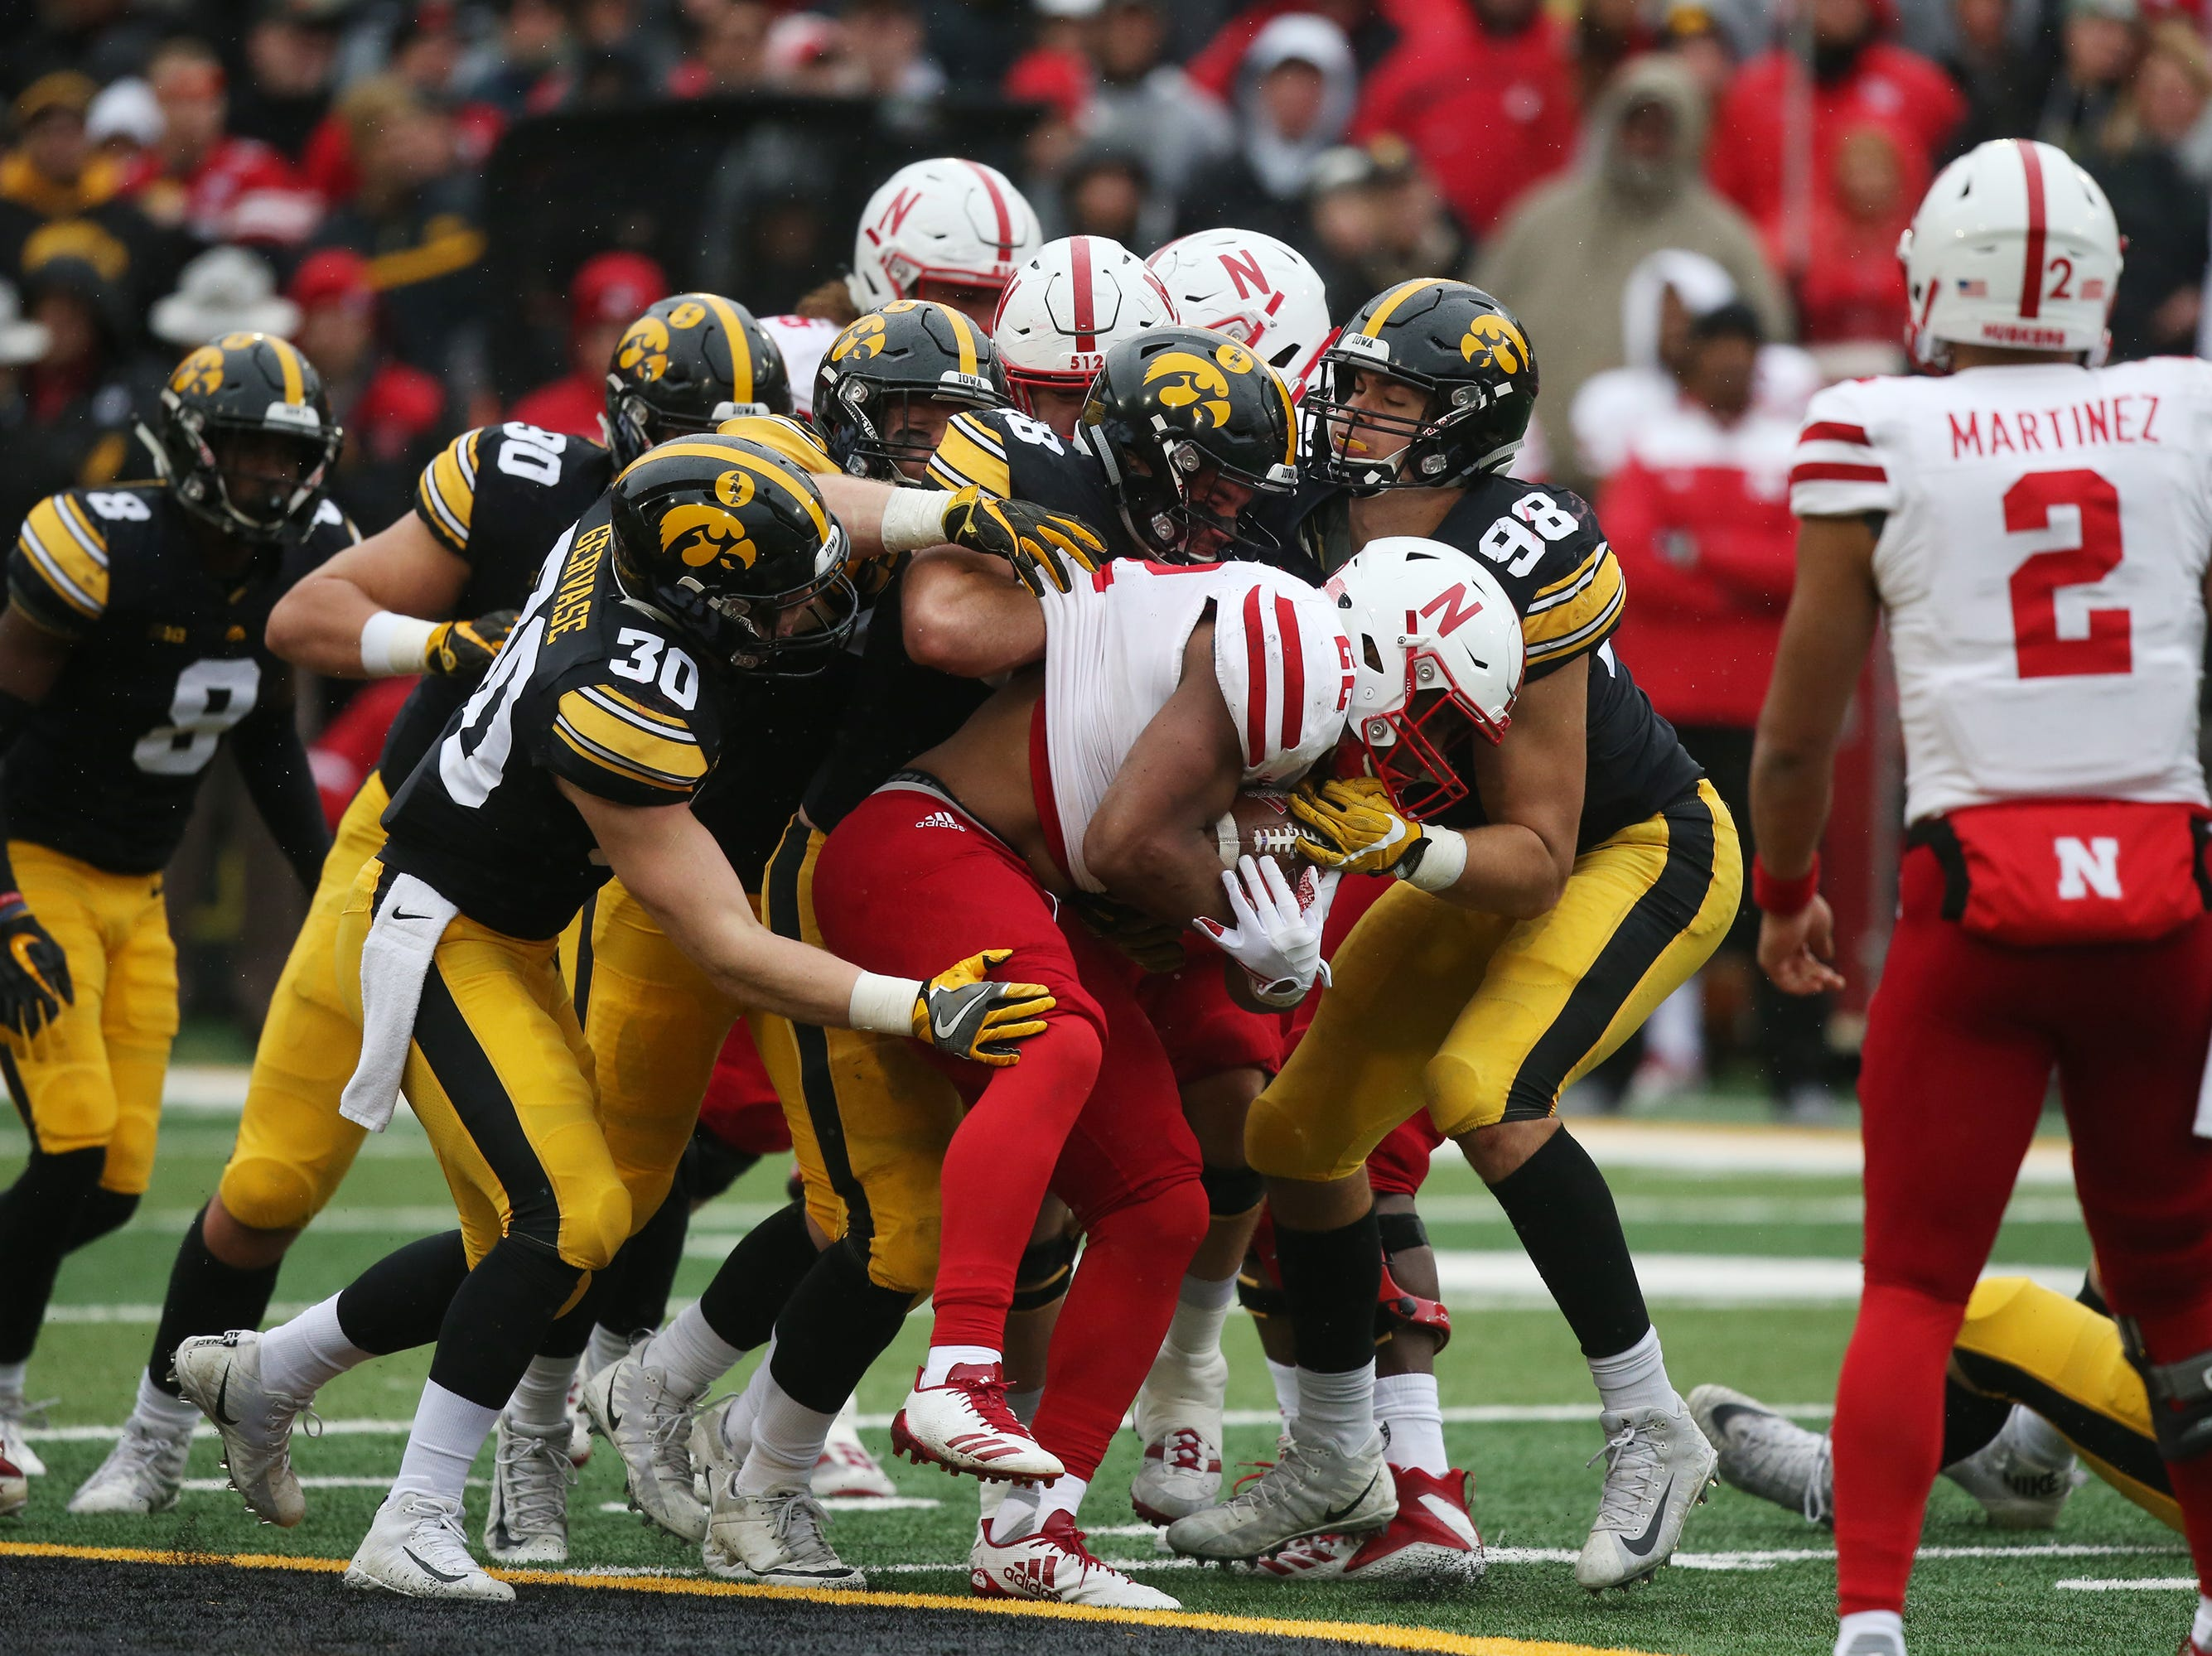 Iowa's Jake Gervase (30) Parker Hesse (40) Jack Hockaday (48) and Anthony Nelson (98) bring down Nebraska's Devine Ozigbo during the senior day match-up between the Iowa Hawkeyes and the Nebraska Cornhuskers on Friday, Nov. 23, 2018, at Kinnick Stadium, in Iowa City.